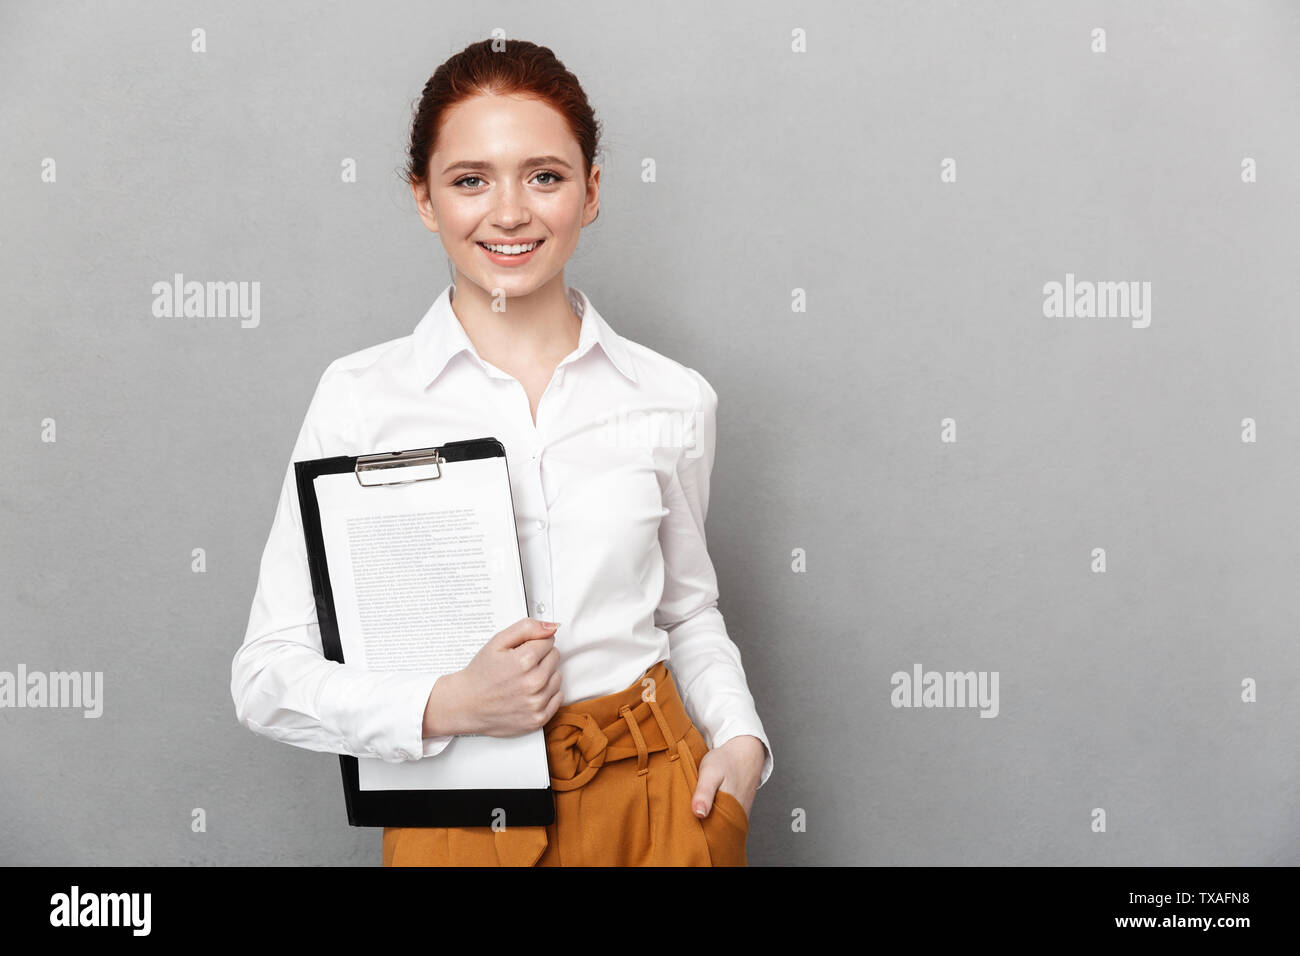 Portrait of cute redhead businesswoman 20s dressed in formal wear holding clipboard with documents and smiling at camera in office isolated over gray - Stock Image